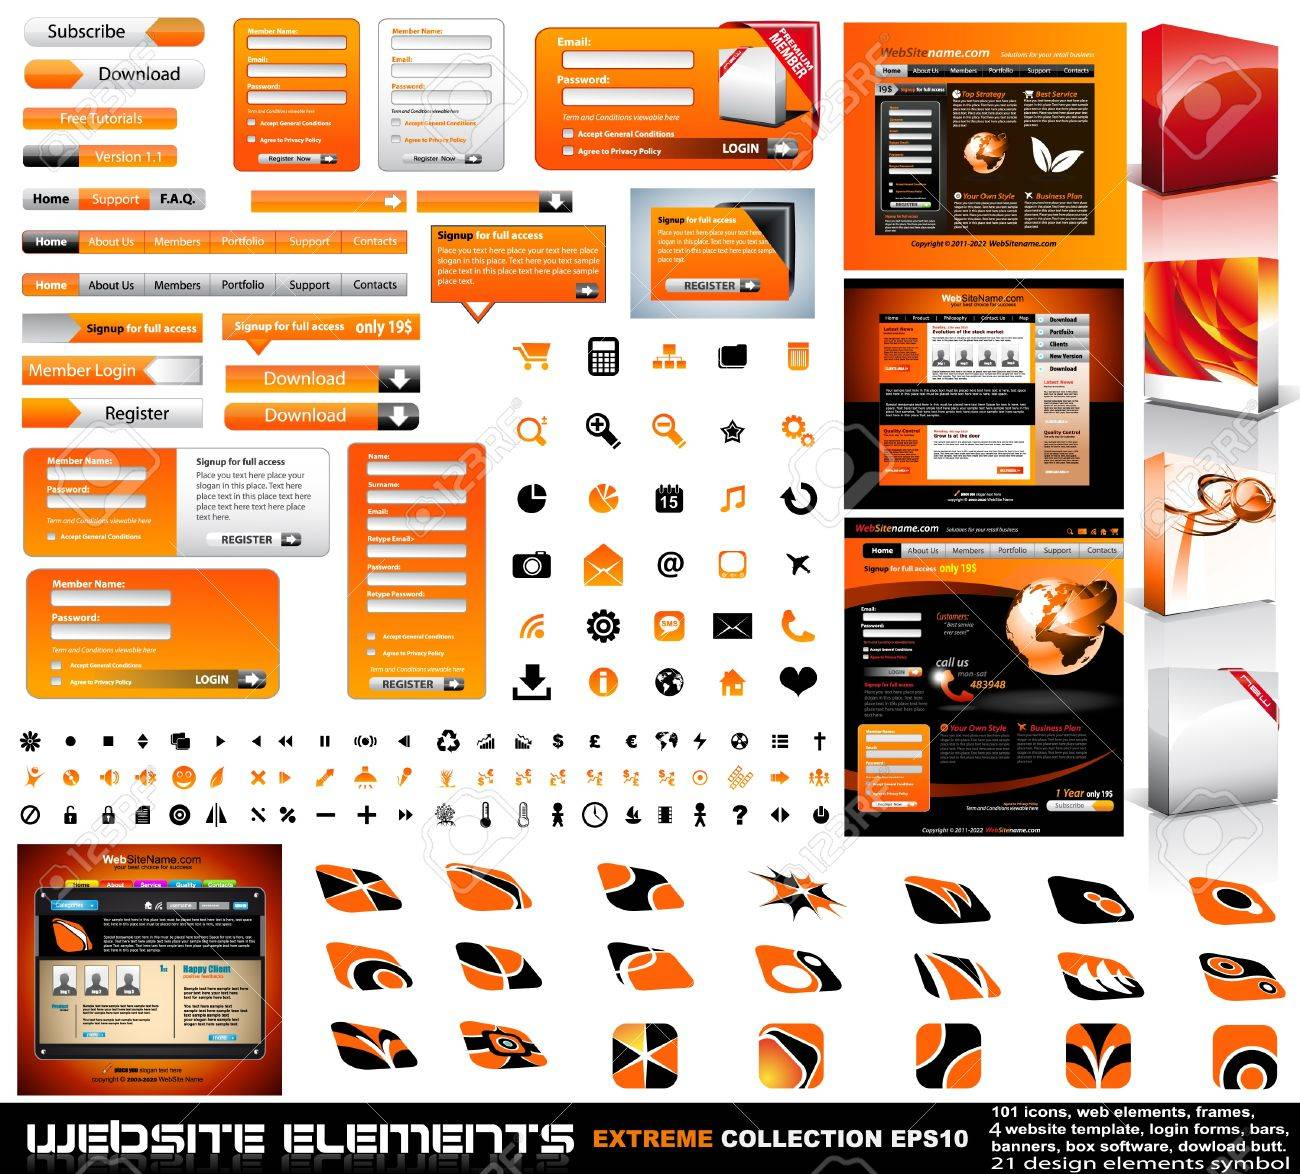 Web design elements extreme collection - frames, bars, 101 icons, bannes, login forms, buttons.4 websites,4software boxes and so on! Stock Vector - 8965982